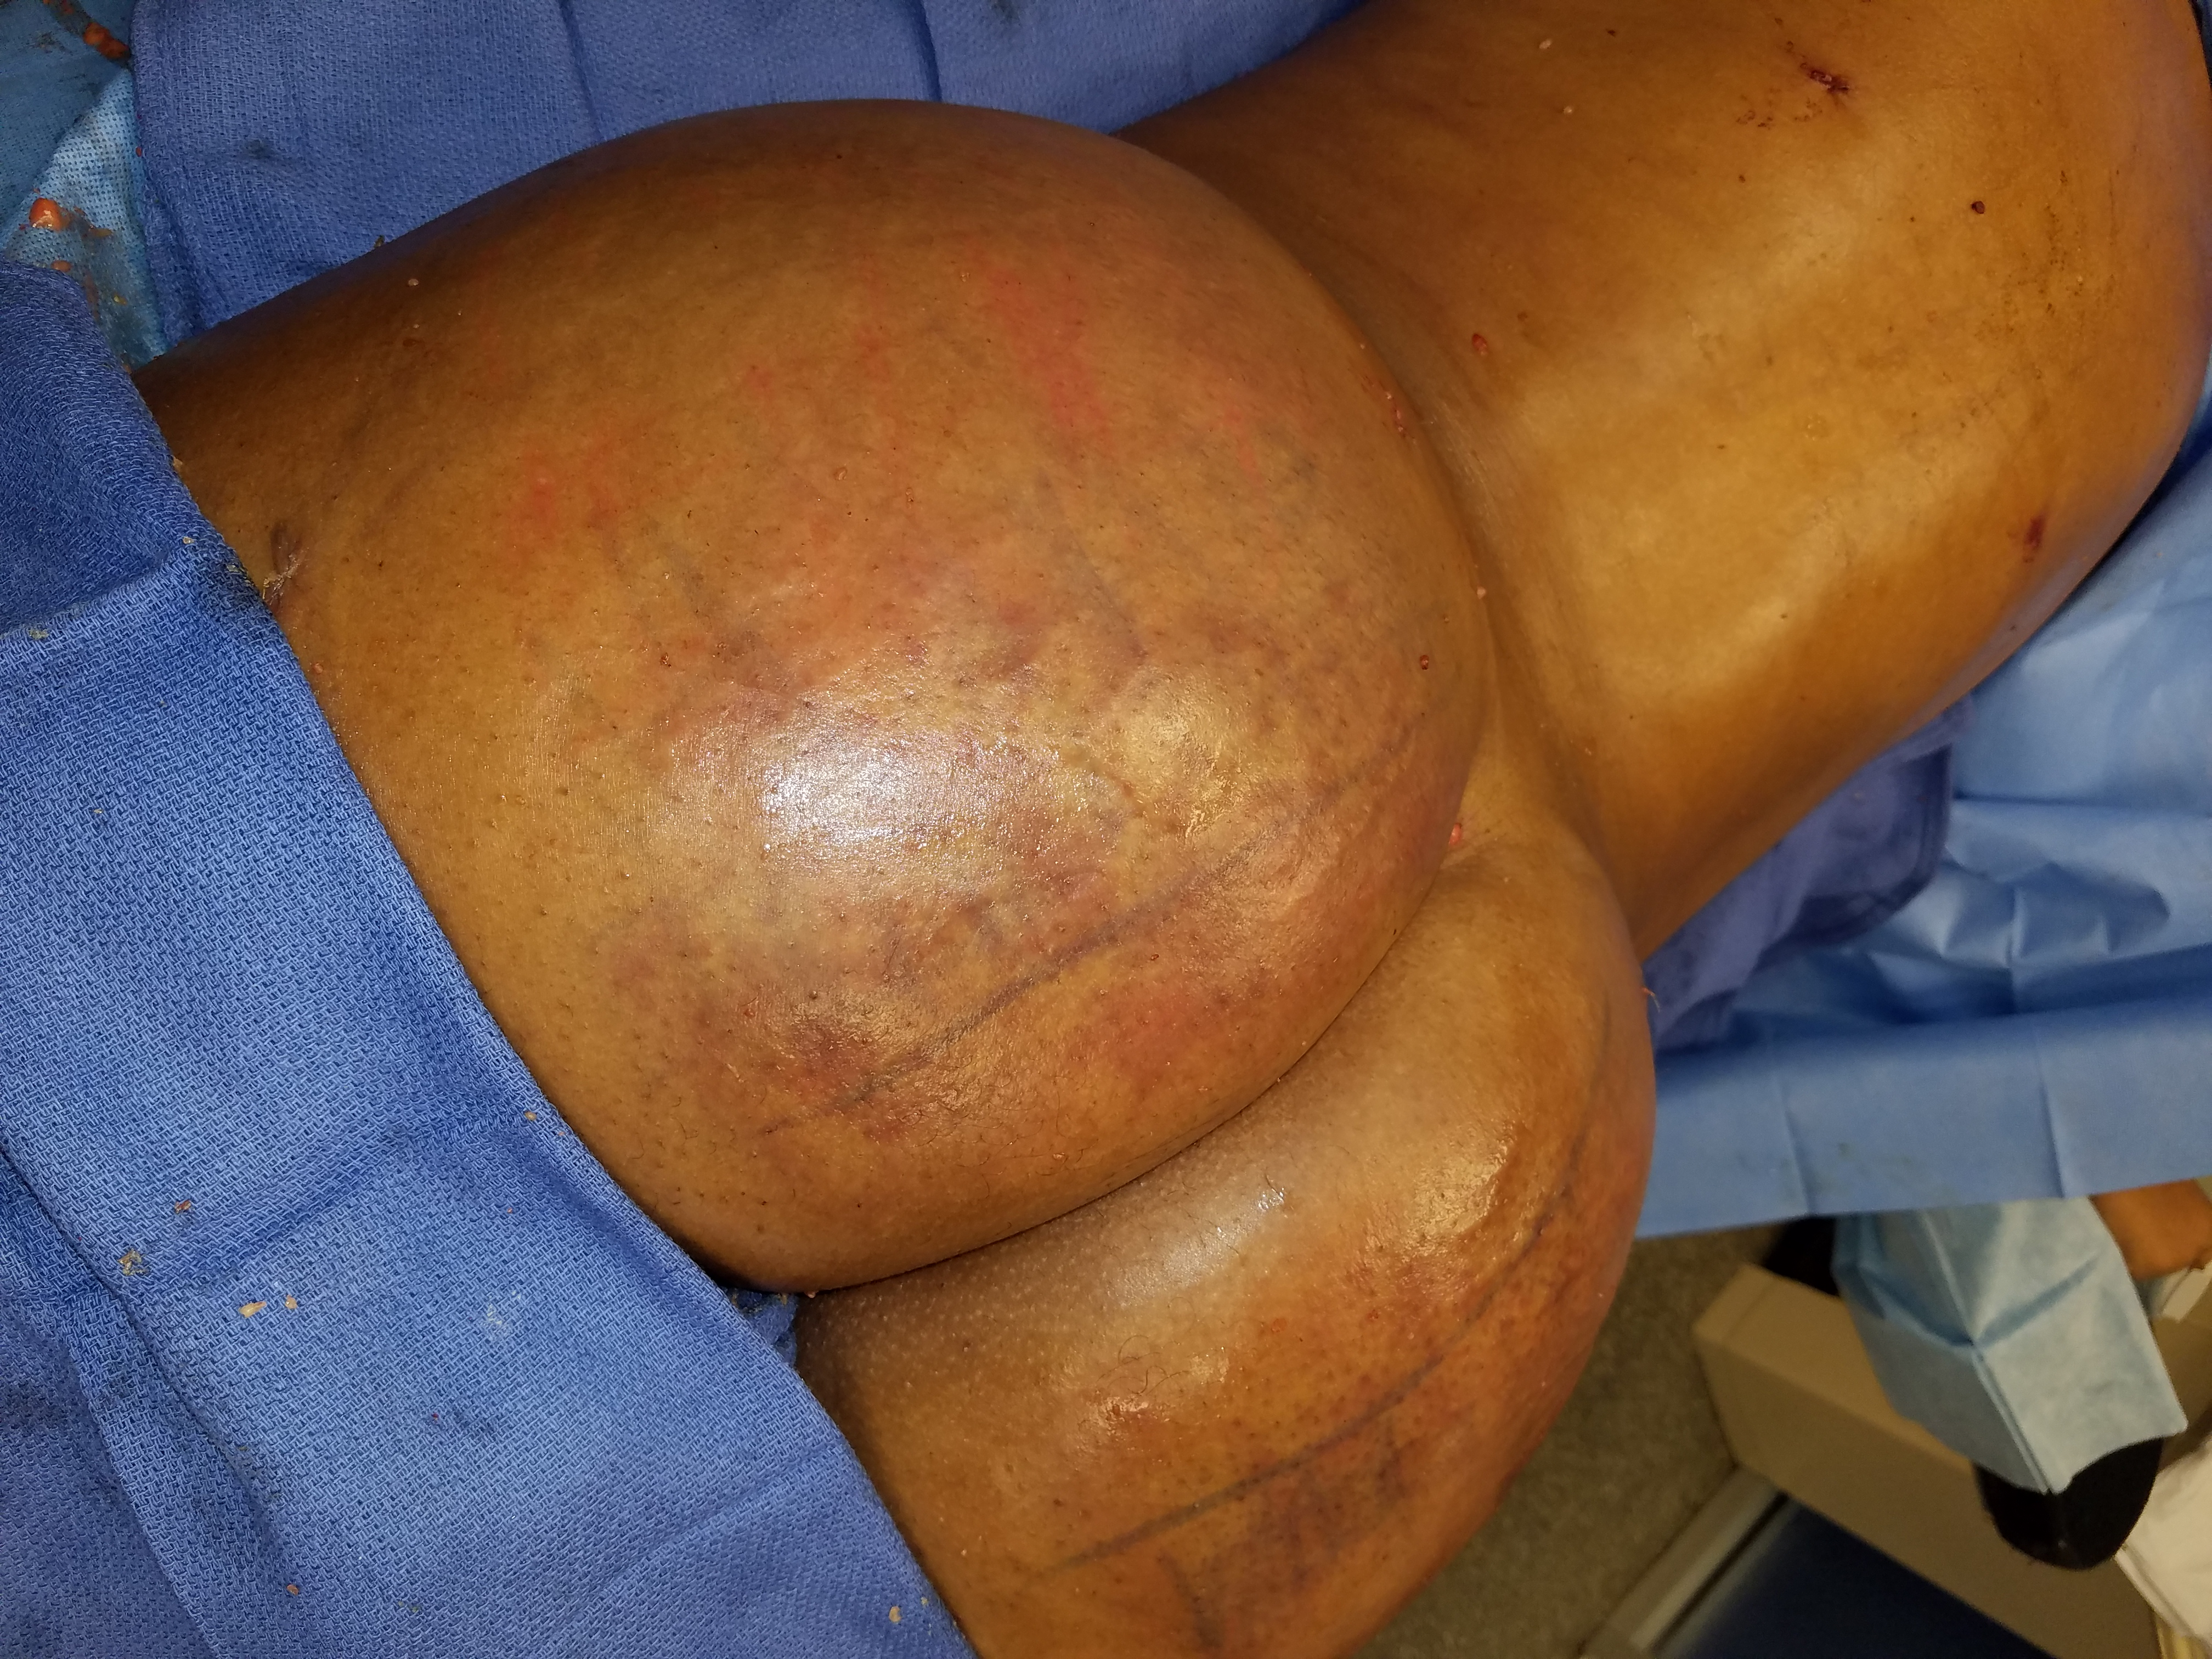 BBL, Butt Augmentation, Brazilian Butt, Brazilan Butt Lift, DrMiami Style, DrMiami, Tummy Tuck, fat transfer,, liposuction, plastic surgery, cosmestic surgeon